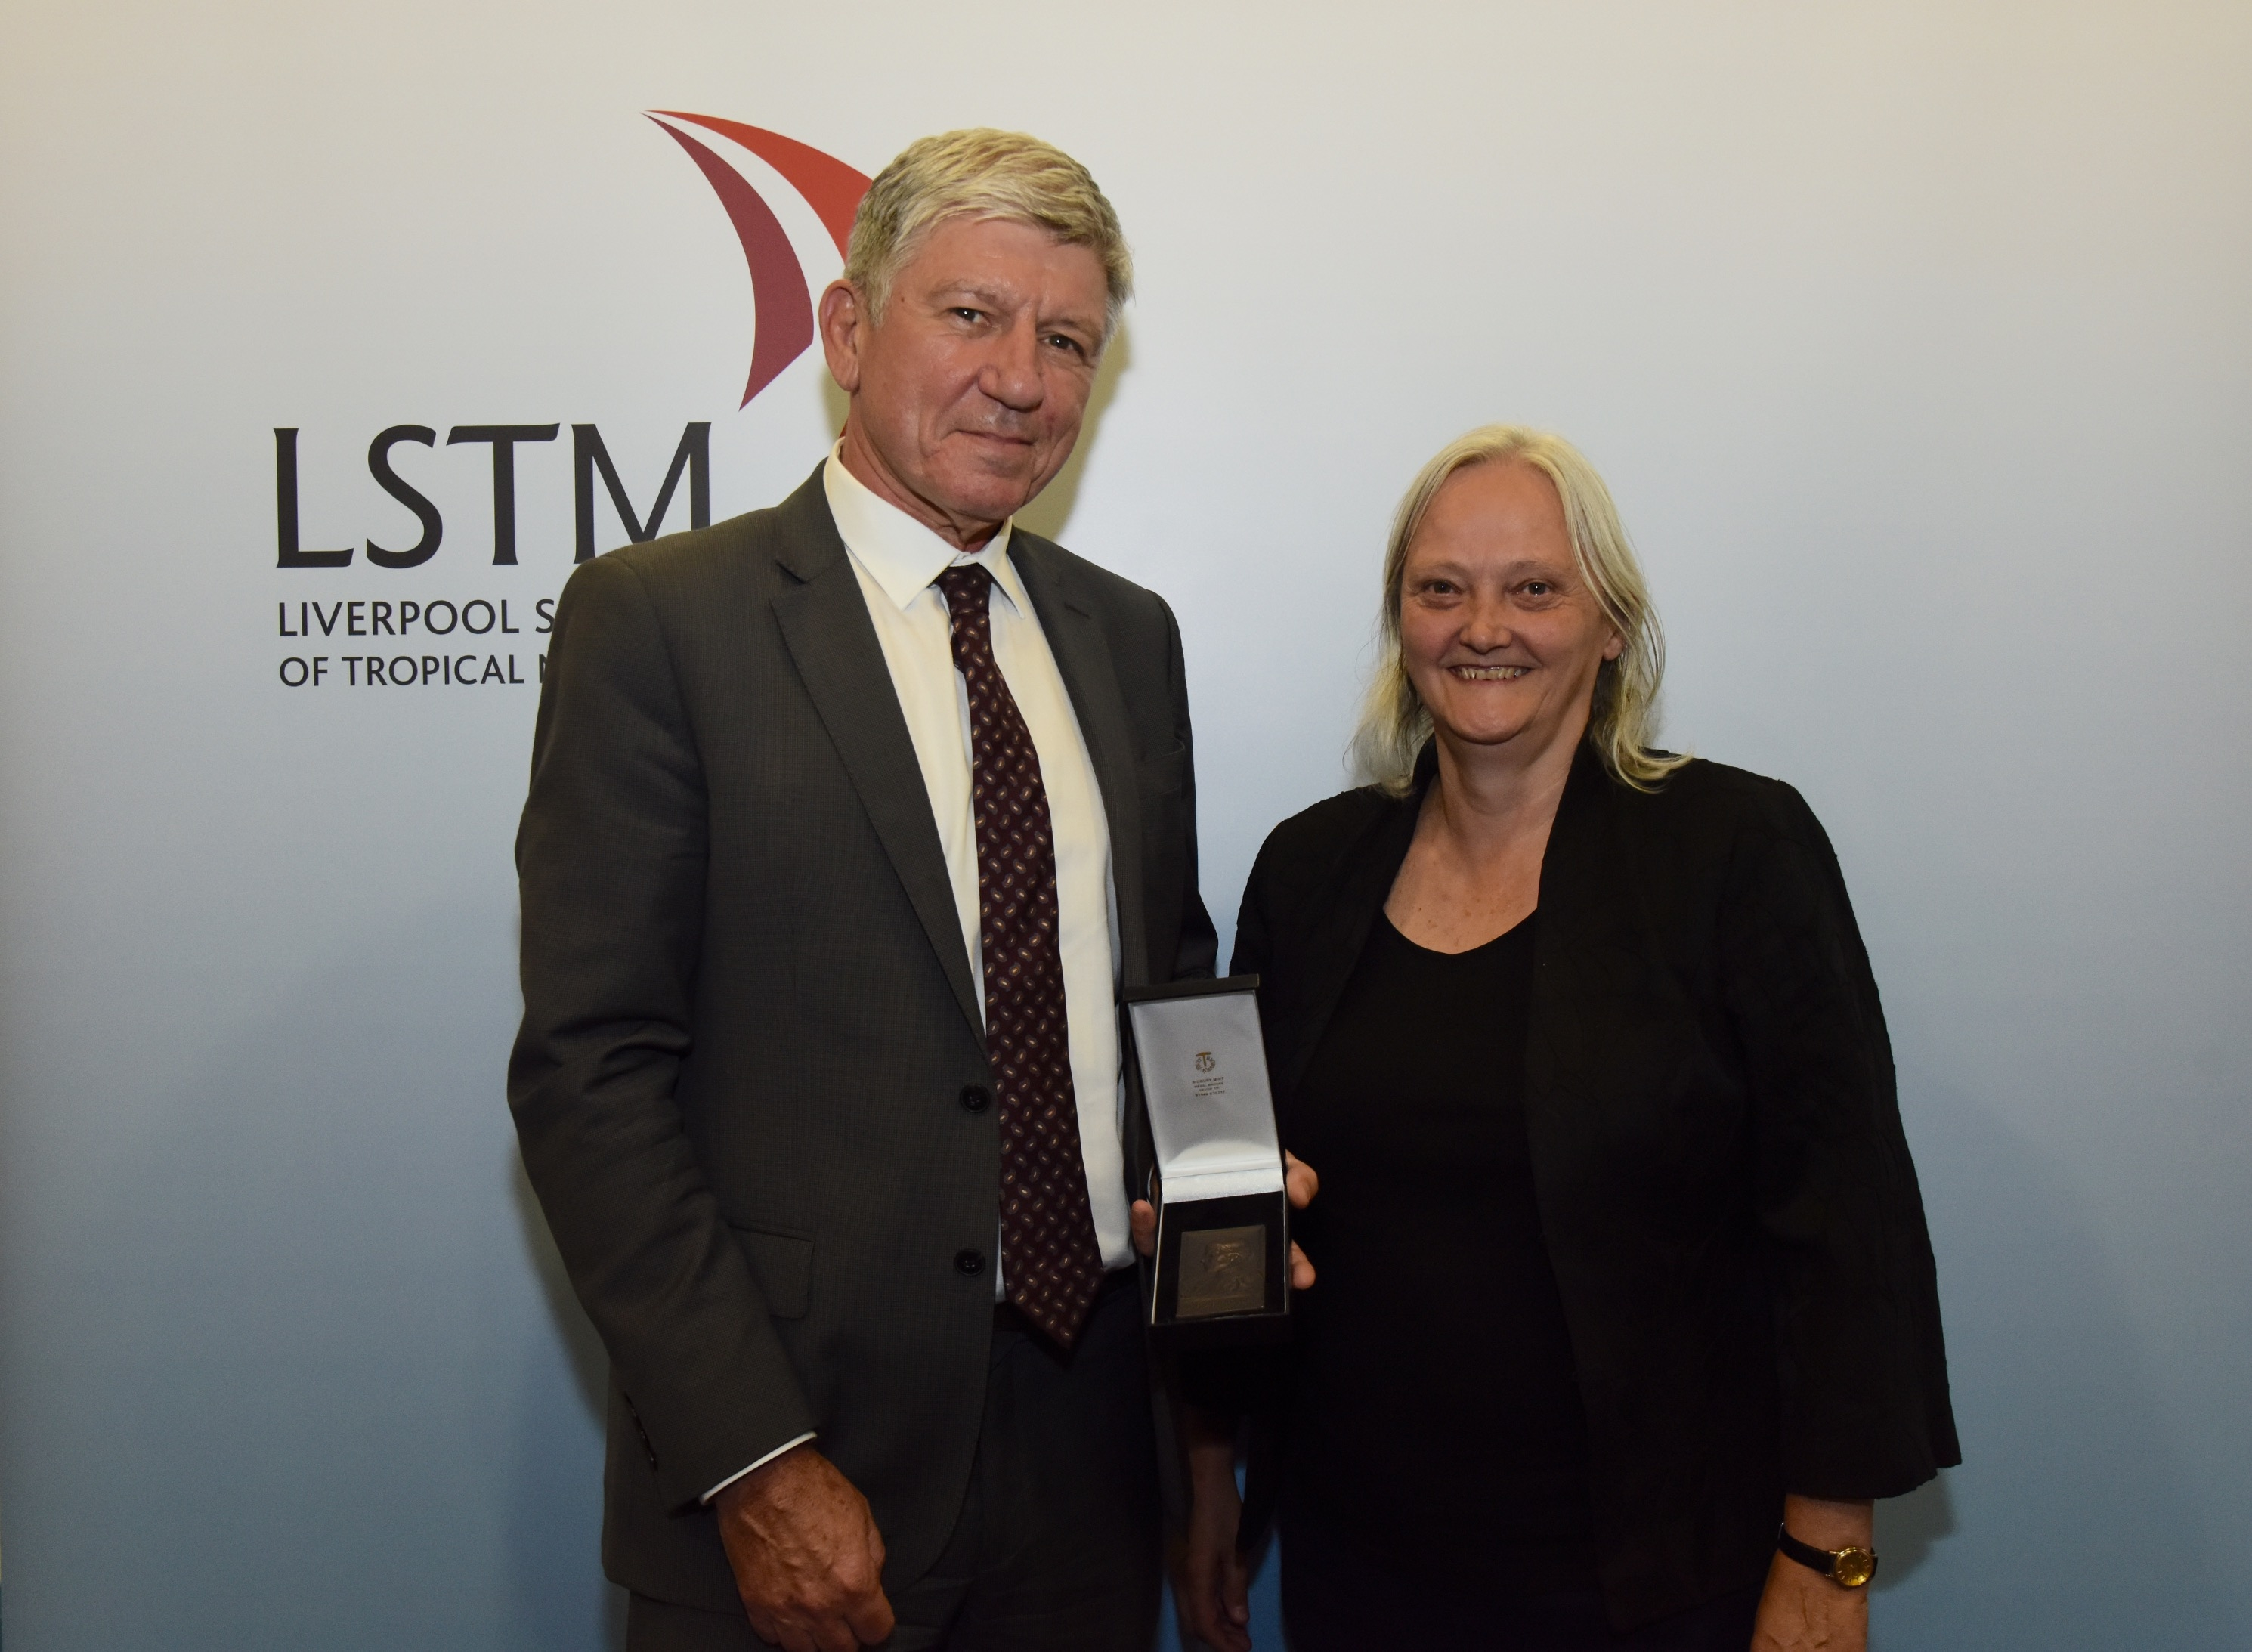 Professor Kevin Marsh receives the Kingsley medal from LSTM Director, Professor Janet Hemingway